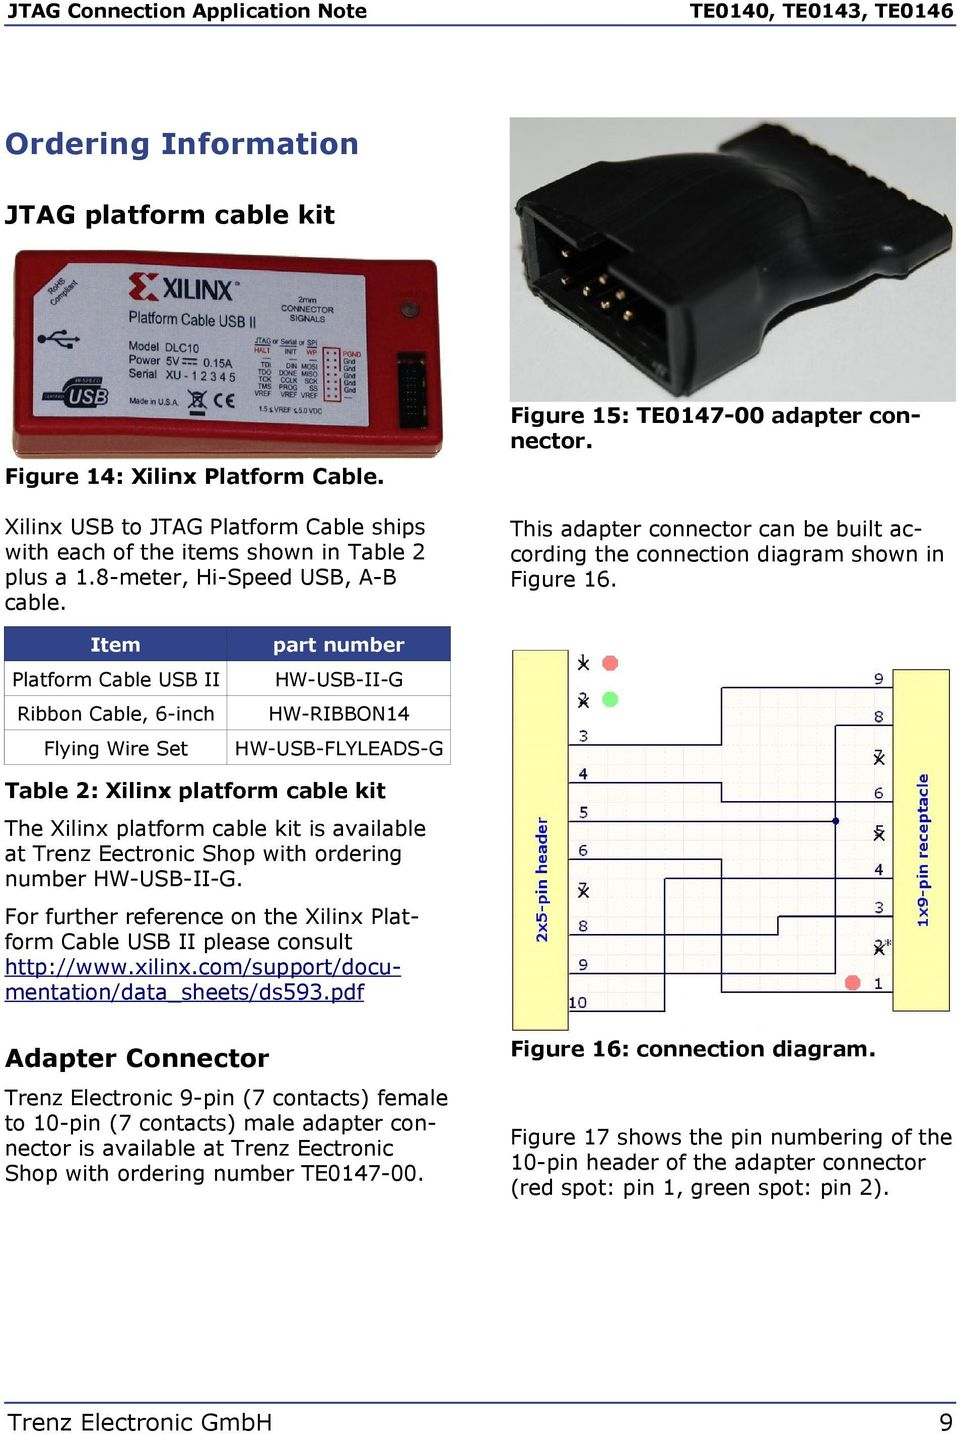 Jtag Connection Application Note Pdf Usb To Serial Wiring Diagram Item Part Number Platform Cable Ii Hw G Ribbon